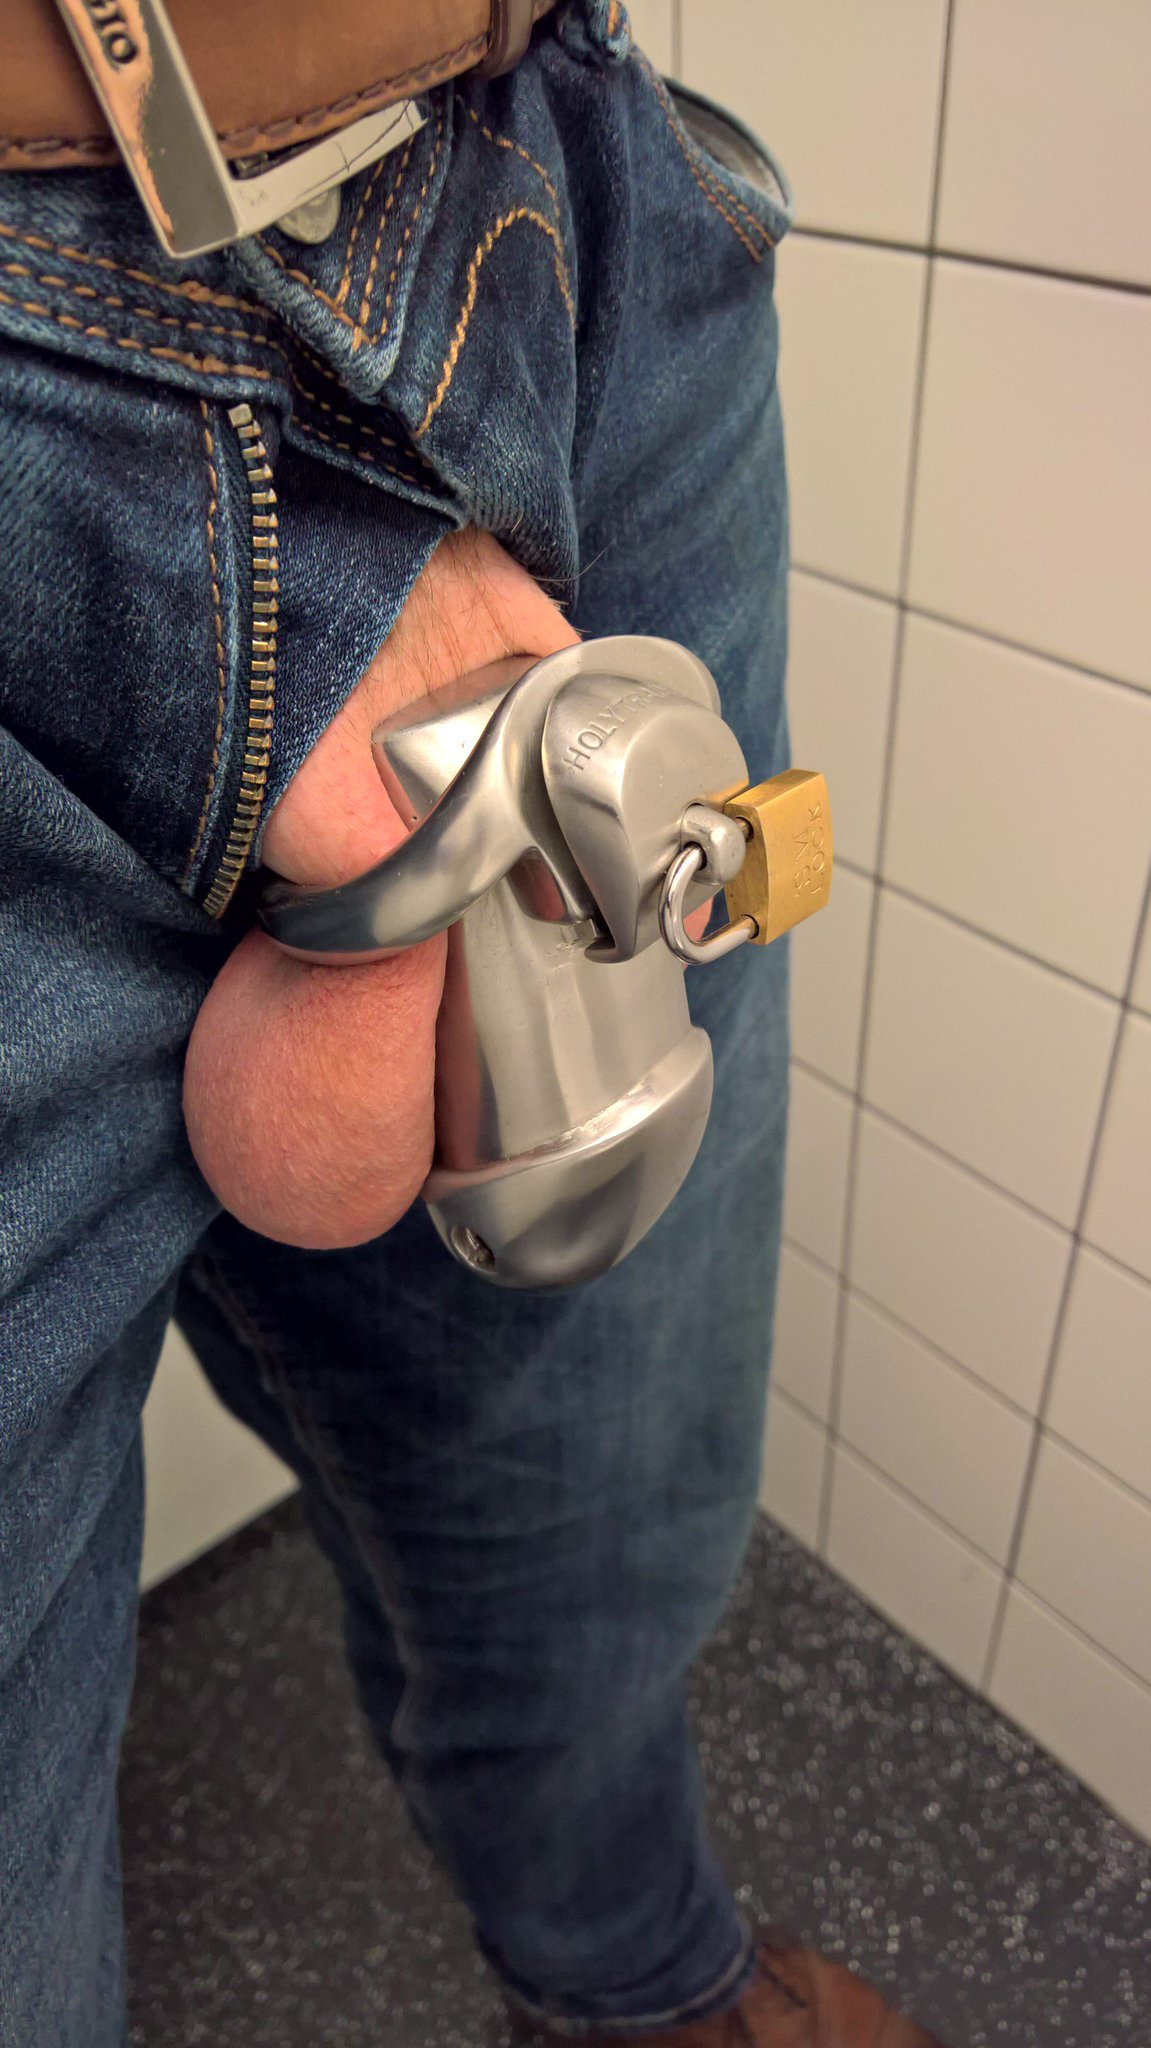 Hmmm wouldn't it be awesome to be able to just walk out of the toilet and back to my desk like this? #public #chastity RT if you like it! https://t.co/XpTFf3gUKg